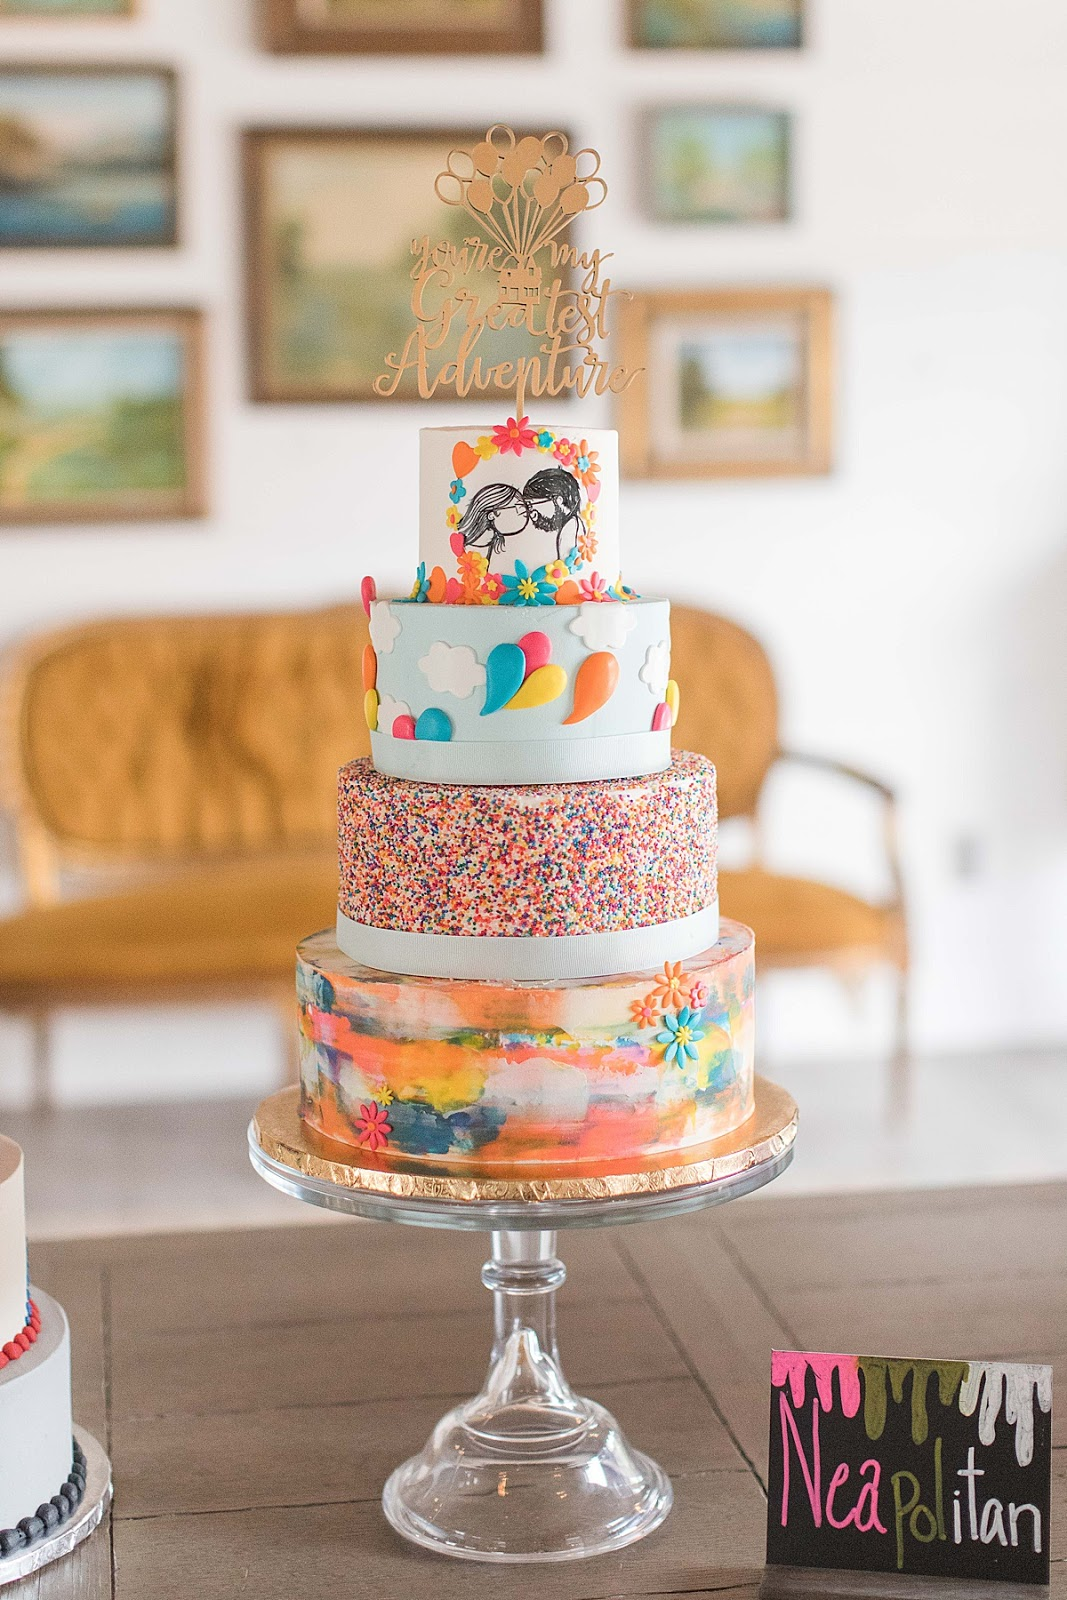 Disney themed Wedding Cake, Gruene Estate Wedding Venue Reception, UP Disney themed wedding cake